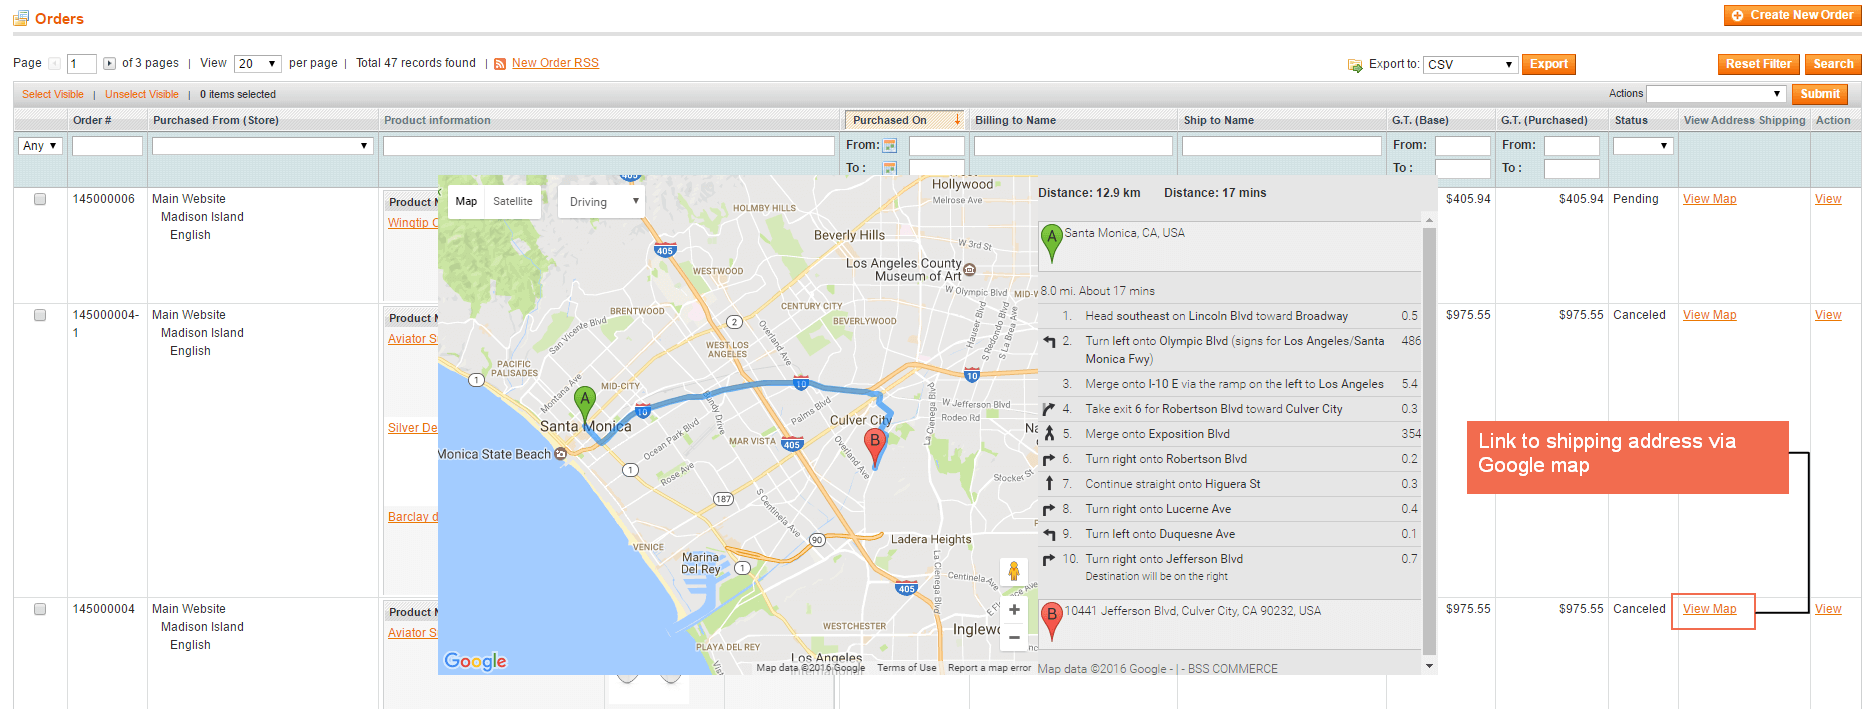 Link to shipping address via Google map by clicking View Map buttons in Order Grid